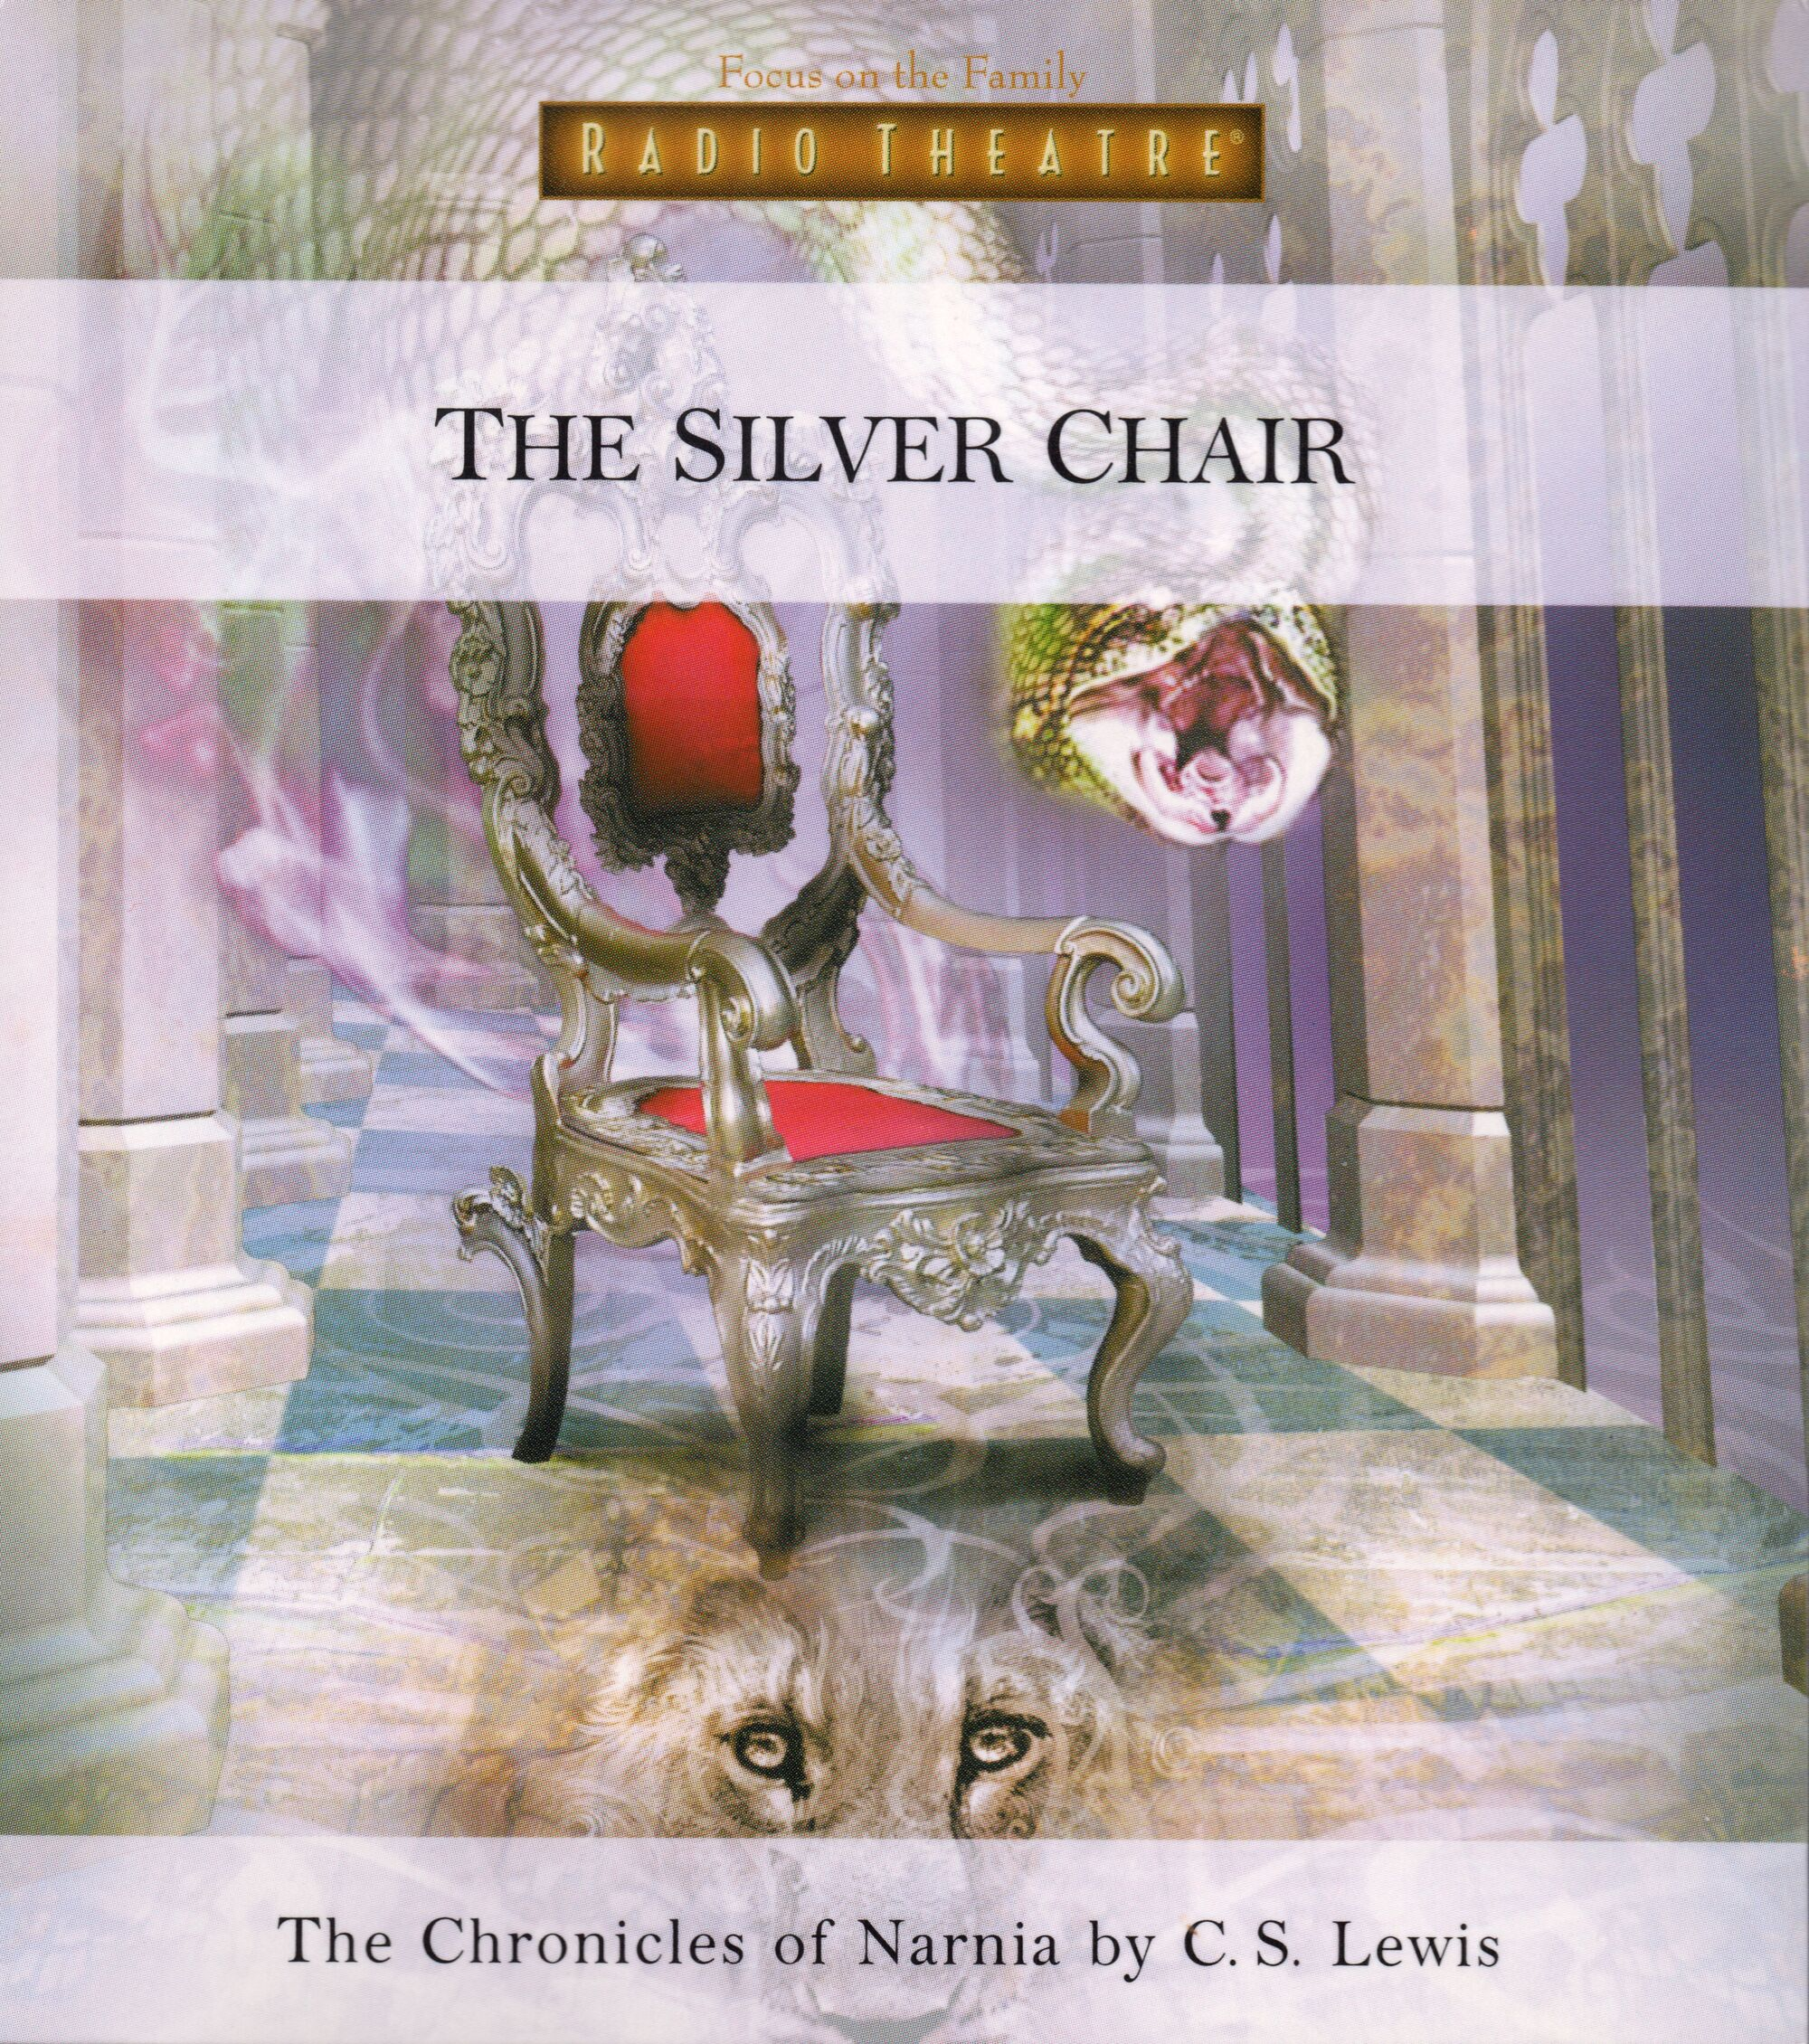 The silver chair bbc - The Silver Chair Focus On The Family Radio Theatre The Chronicles Of Narnia Wiki Fandom Powered By Wikia